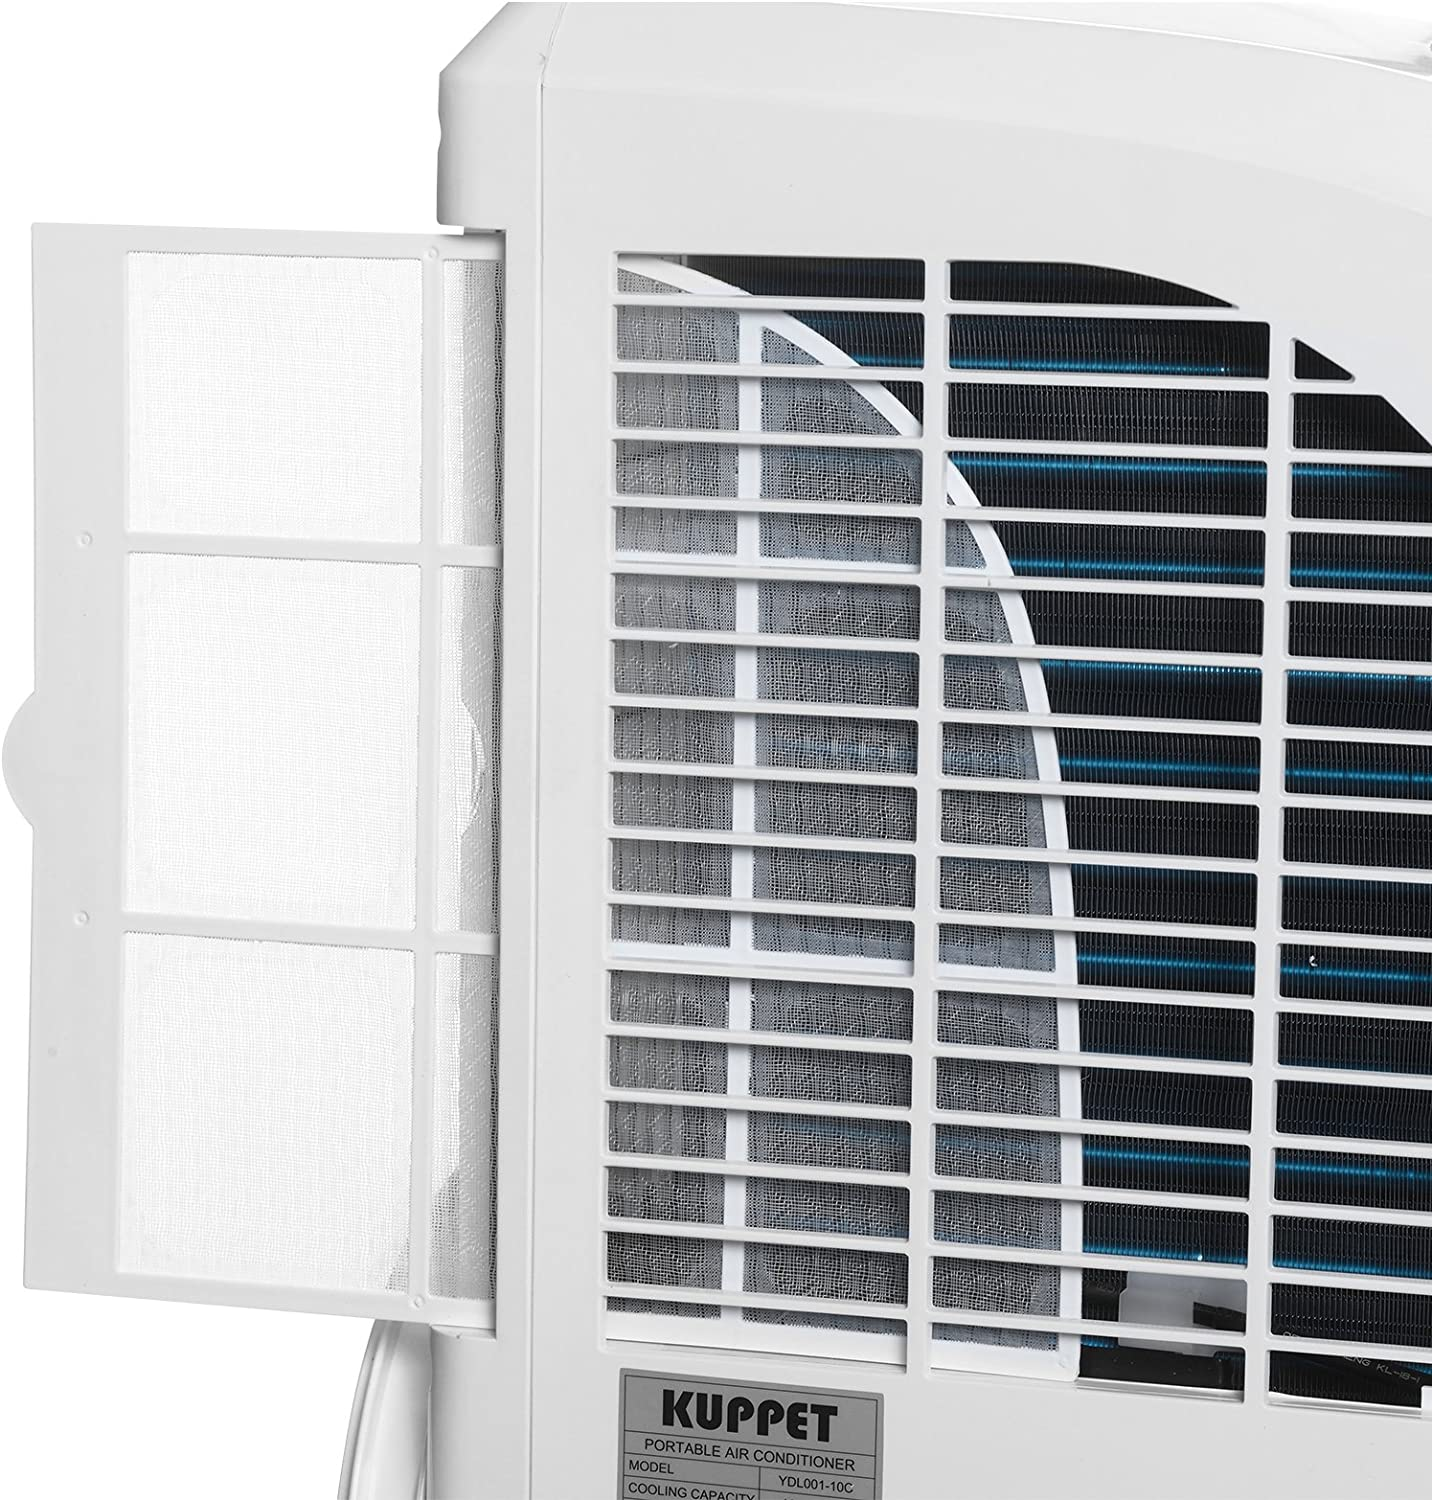 w//LED Display KUPPET 3-IN-1 Portable Air Conditioners With Cooling Fan Dehumidifier for Rooms up to 350 Sq.Ft Remote Control /& 4 Caster Wheels Super Quite Cooling-12000 BTU